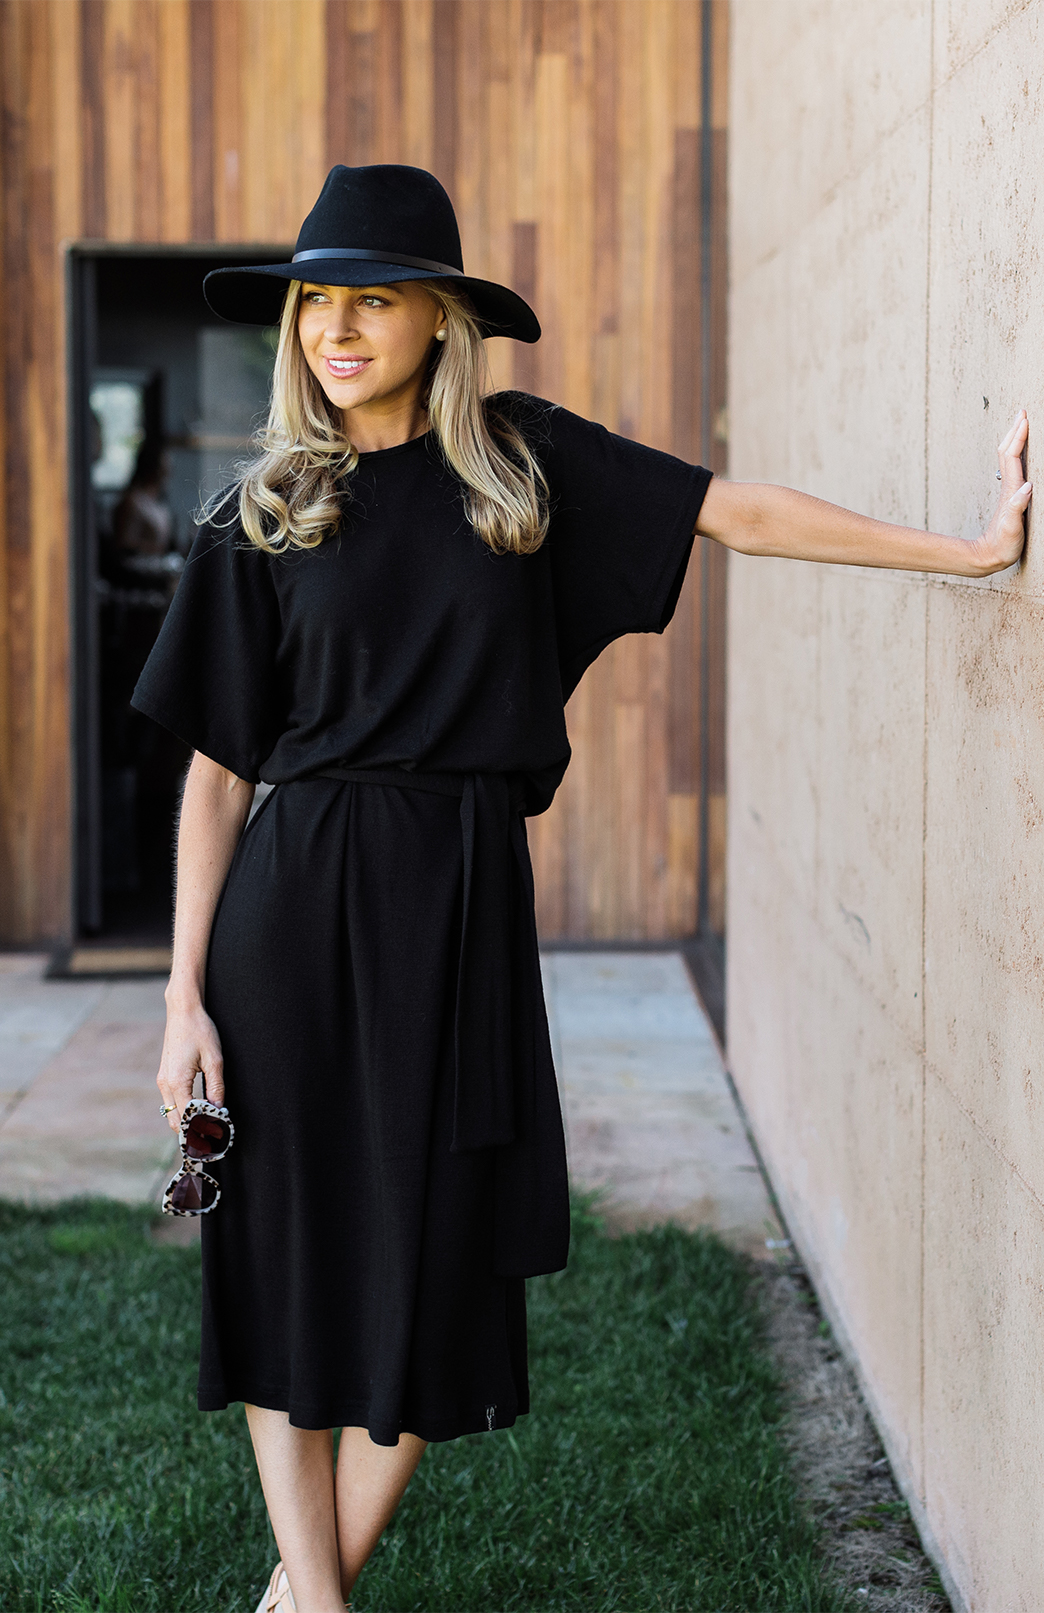 Margo Dress - Women's Knee Length Black Merino Wool Loose T-Shirt Dress with Sleeves and Waist Tie - Smitten Merino Tasmania Australia